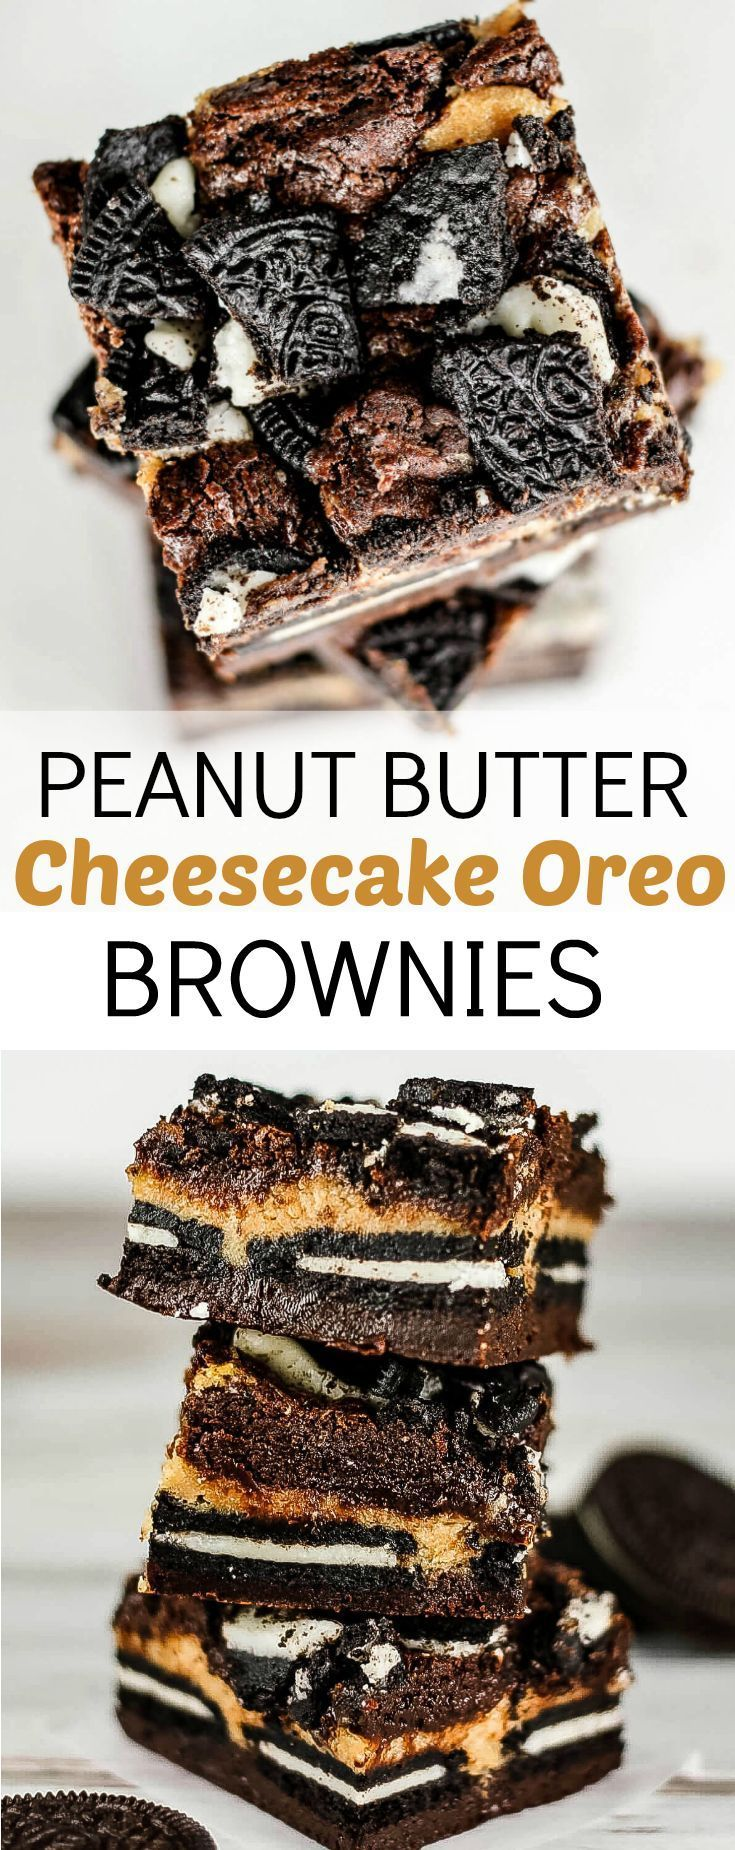 These peanut butter cheesecake Oreo brownies have five layers of brownie, cheesecake, and cookies. And they promise to be out of this world good! via @ohsweetbasil